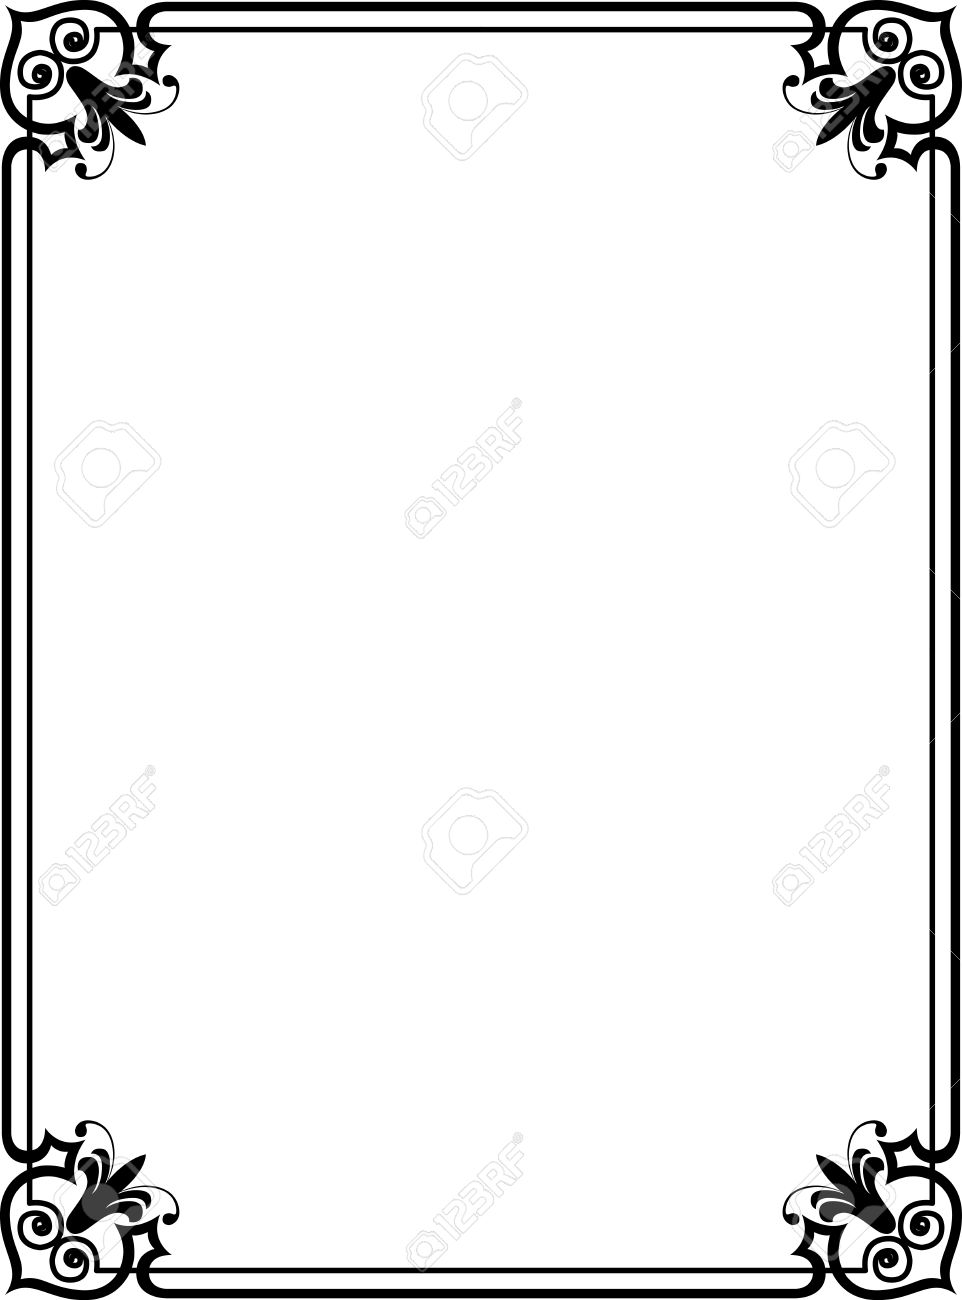 Elegant Frame With Decorative Corners Monochrome Royalty Free